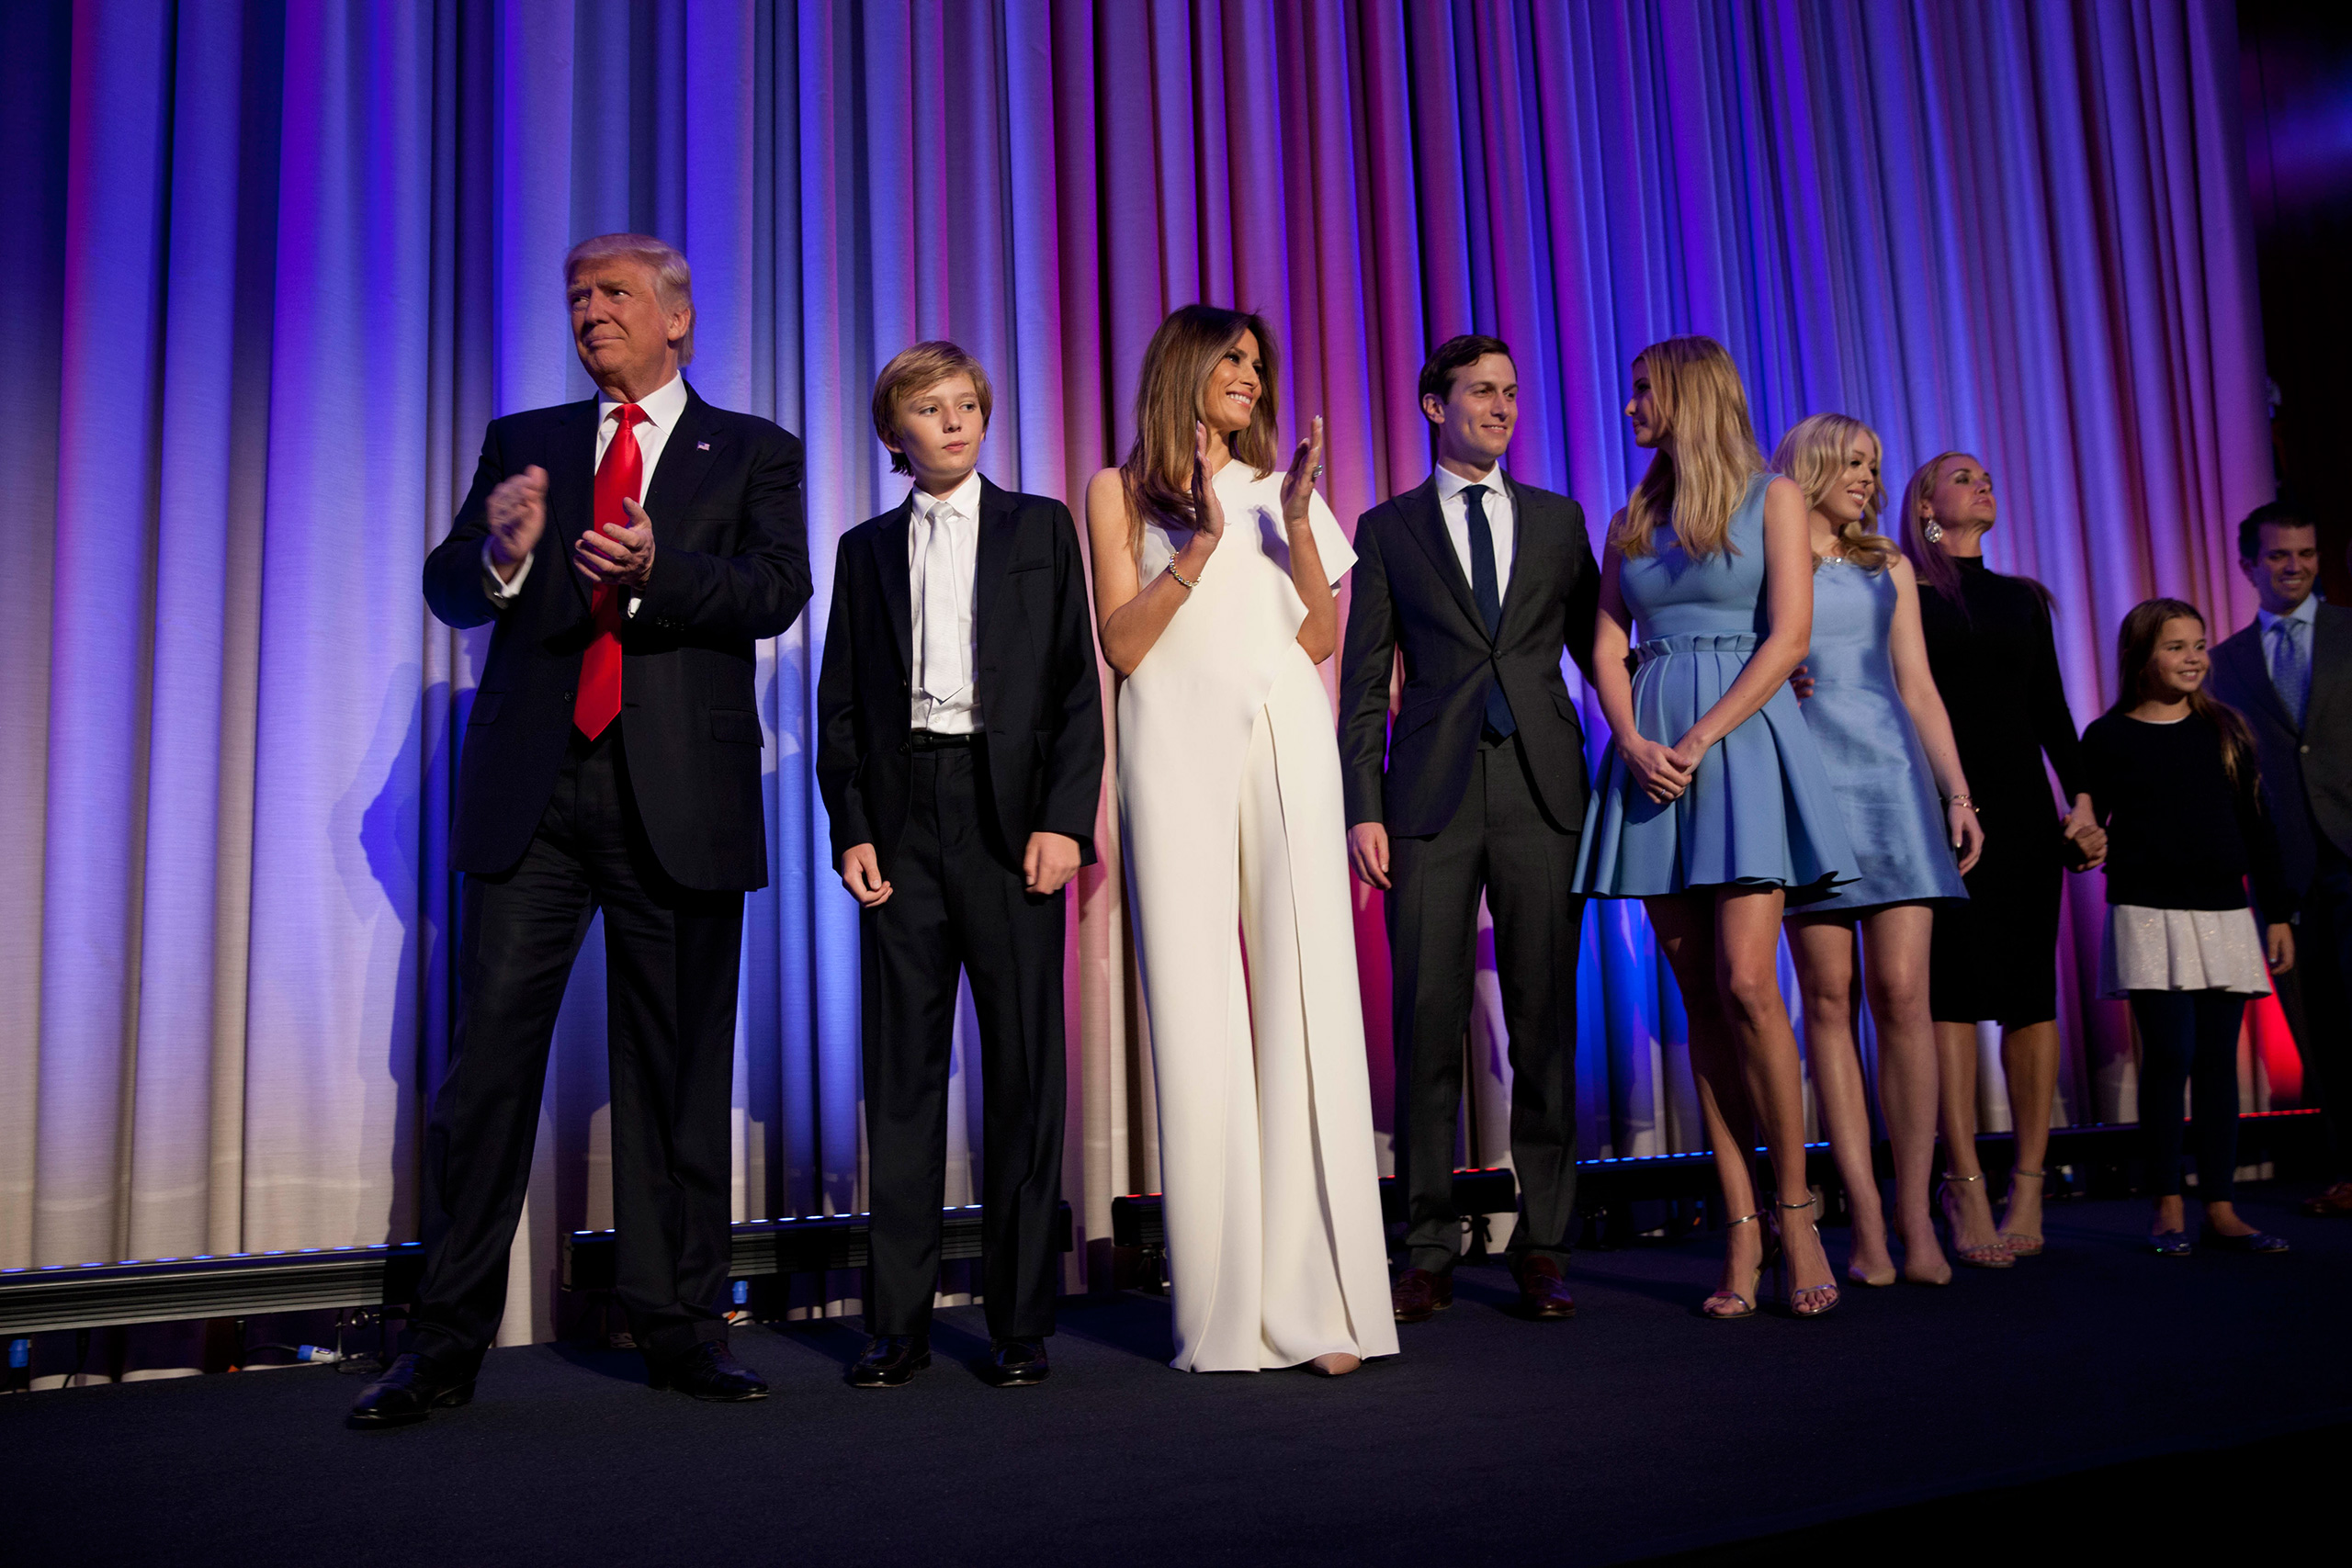 Trump arrives with his family to greet the crowd at his victory celebration in New York on Nov. 9, 2016.From  Message Delivered.  Nov. 21, 2016 issue.